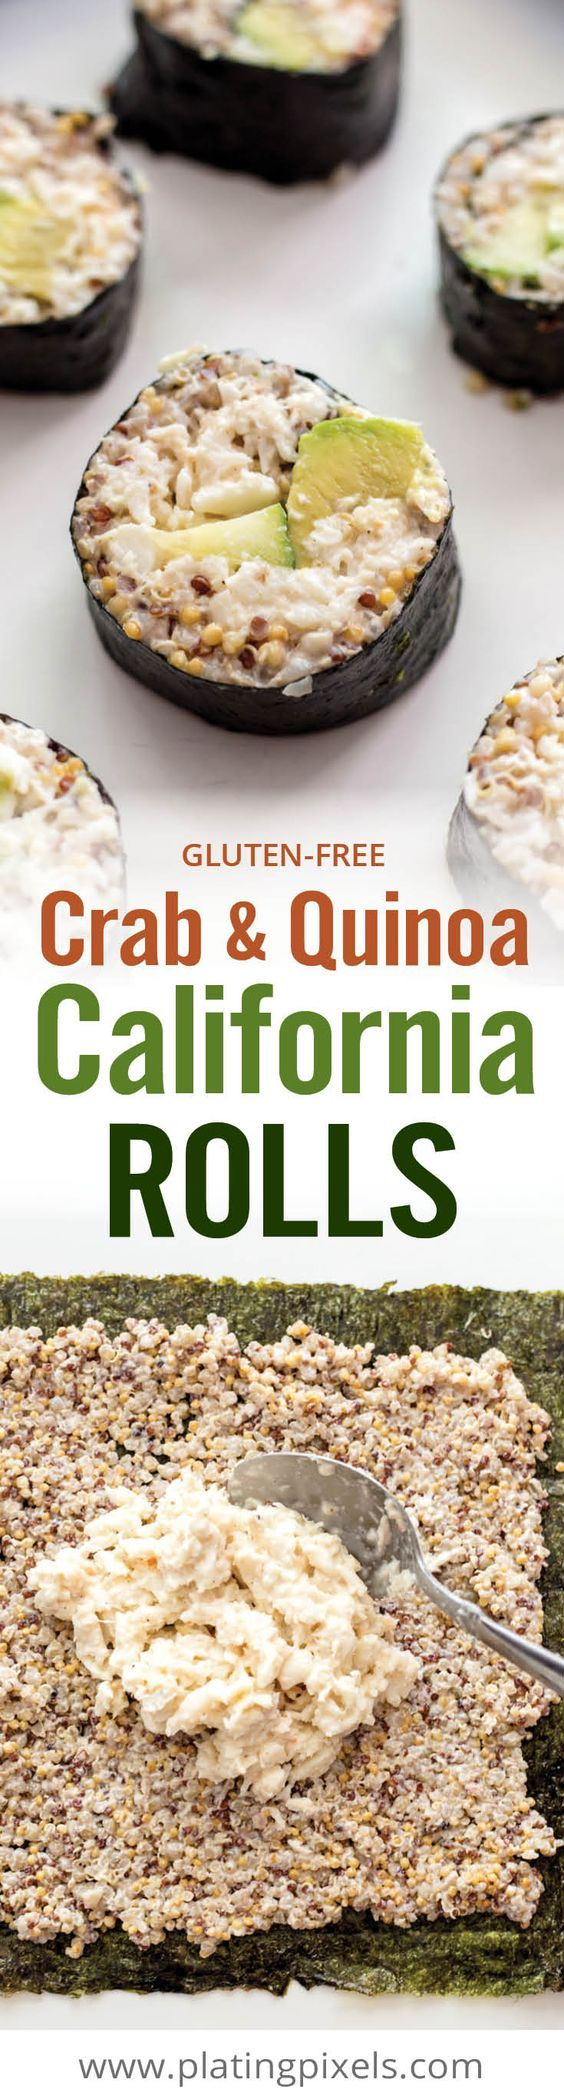 Crab and Quinoa California Rolls is an easy homemade sushi recipe. Cooked quinoa, crab meat, mayo sauce, avocado and cumber rolled in seaweed. Plus it's gluten-free. #vhblends #clvr @village_harvest [ad] https://www.pinterest.com/villageharvest/